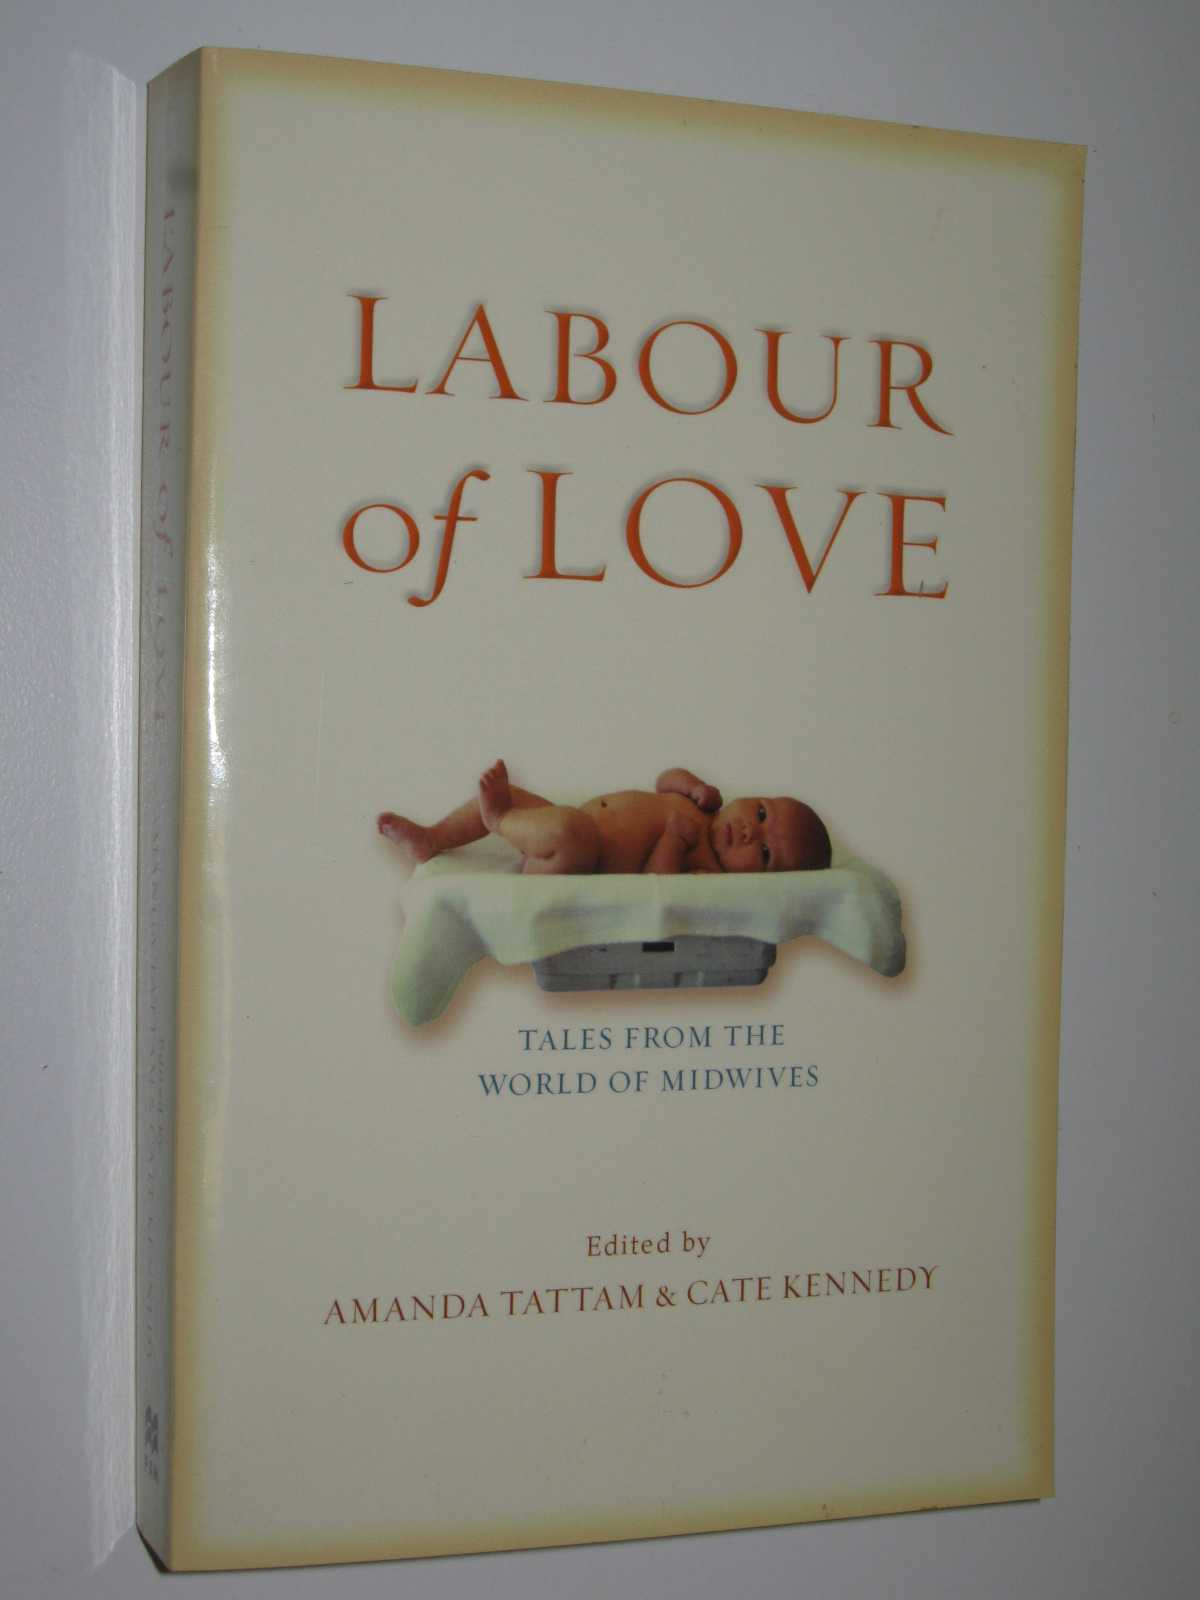 Labour of Love : Tales from the World of Midwives, Tattam, Amanda & Kennedy, Cate (edited)